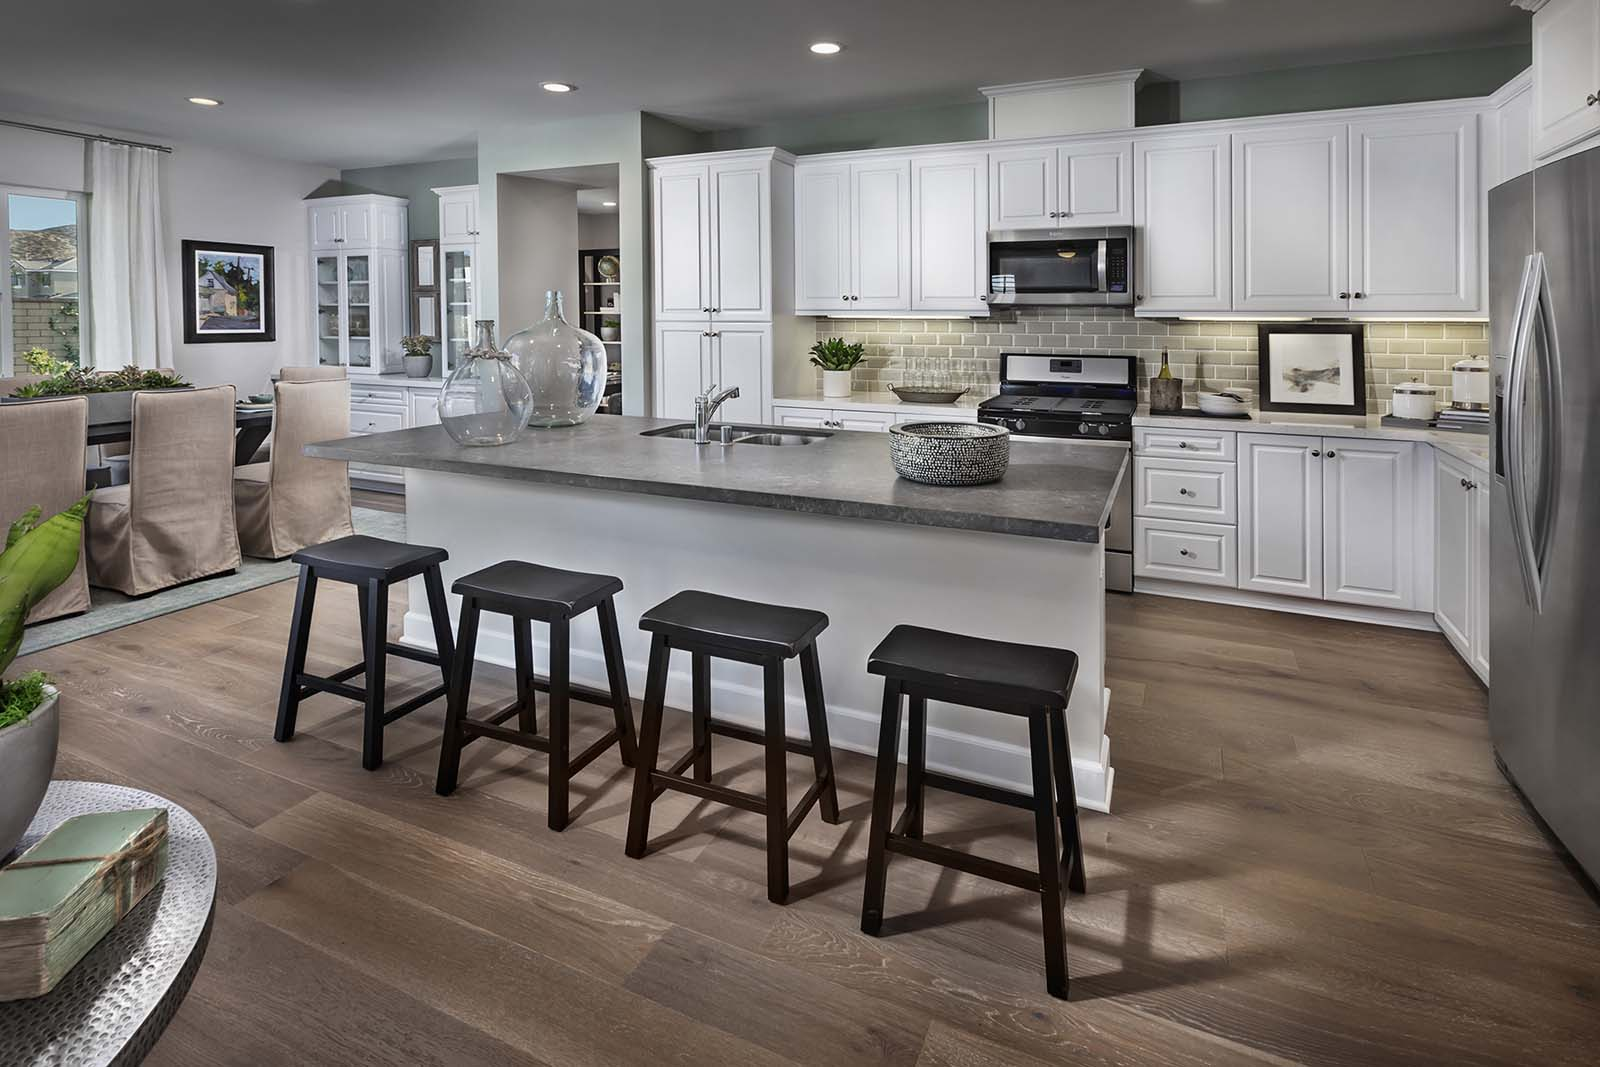 Plan 3 kitchen | Savannah at Audie Murphy Ranch in Menifee, CA | Brookfield Residential